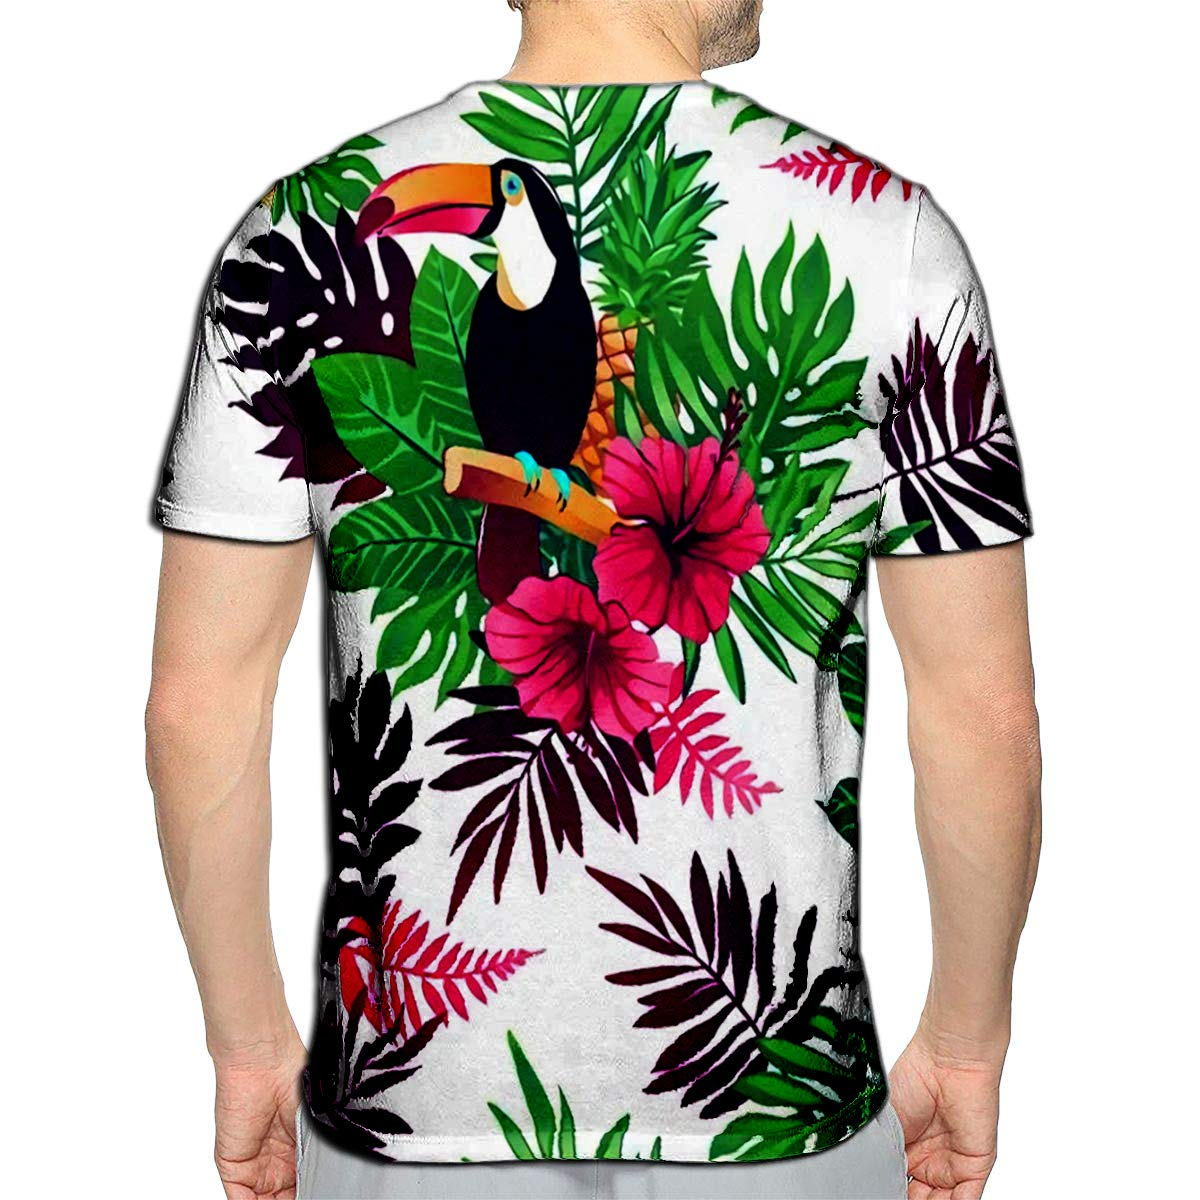 T-Shirt 3D Printed Tropical Trendy with Toucans Flamingos Exotic Flowers and Leaves Casual Tees